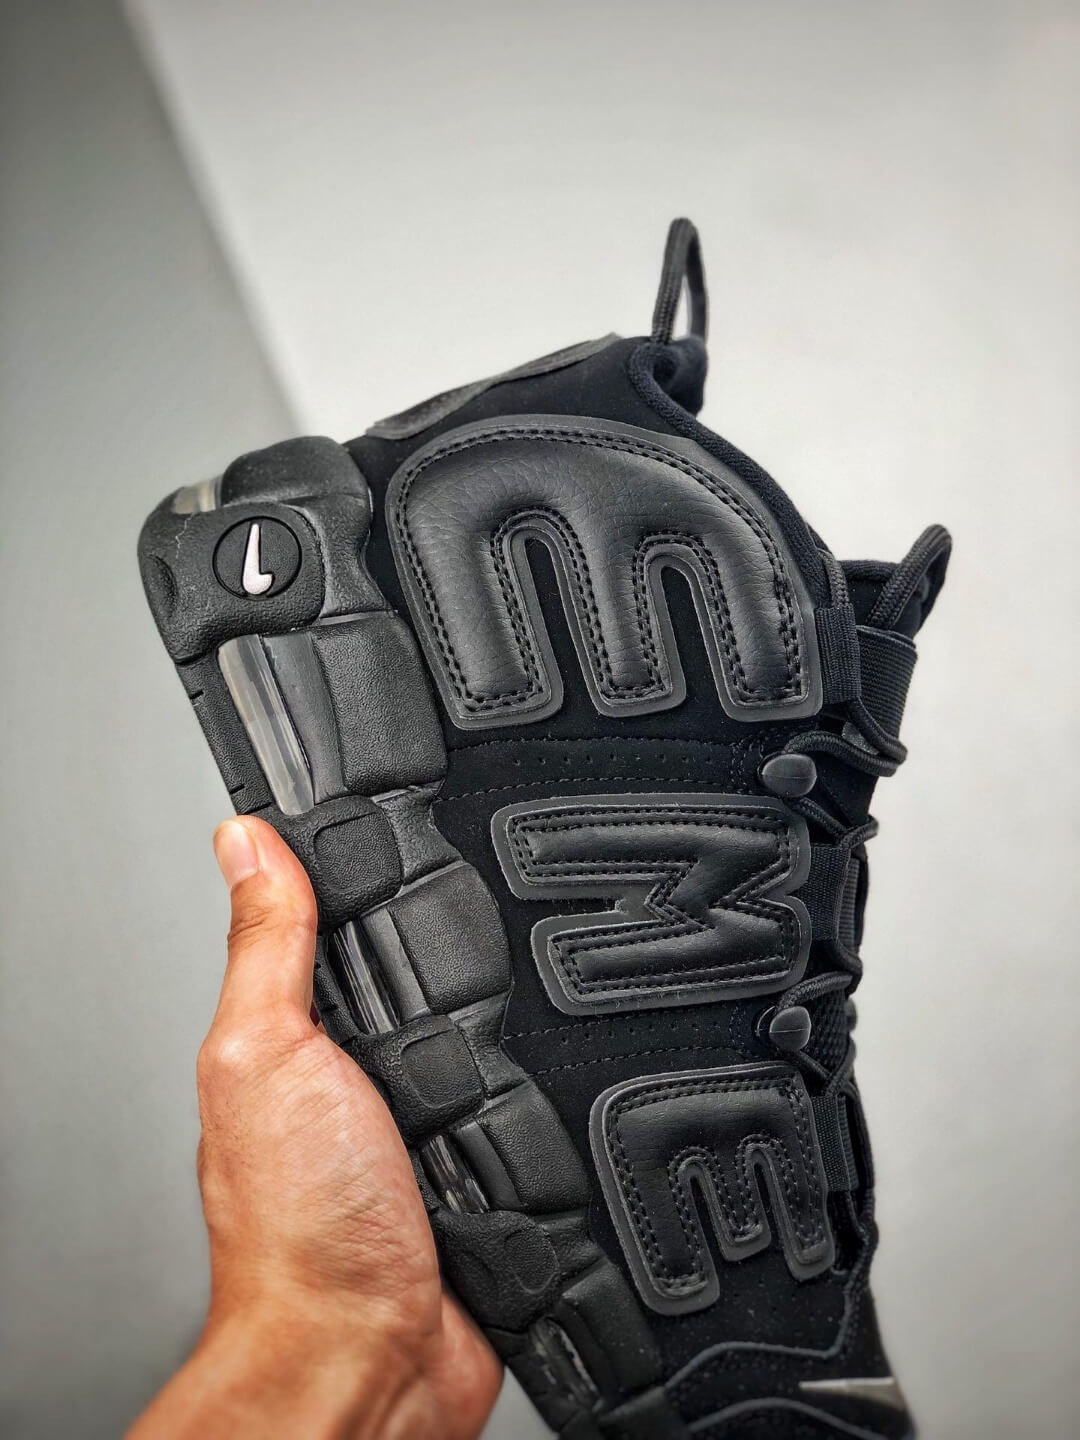 The Nike Supreme x Air More Uptempo Black Basketball Shoes Premium Suede Upper Rep Sneakers 05